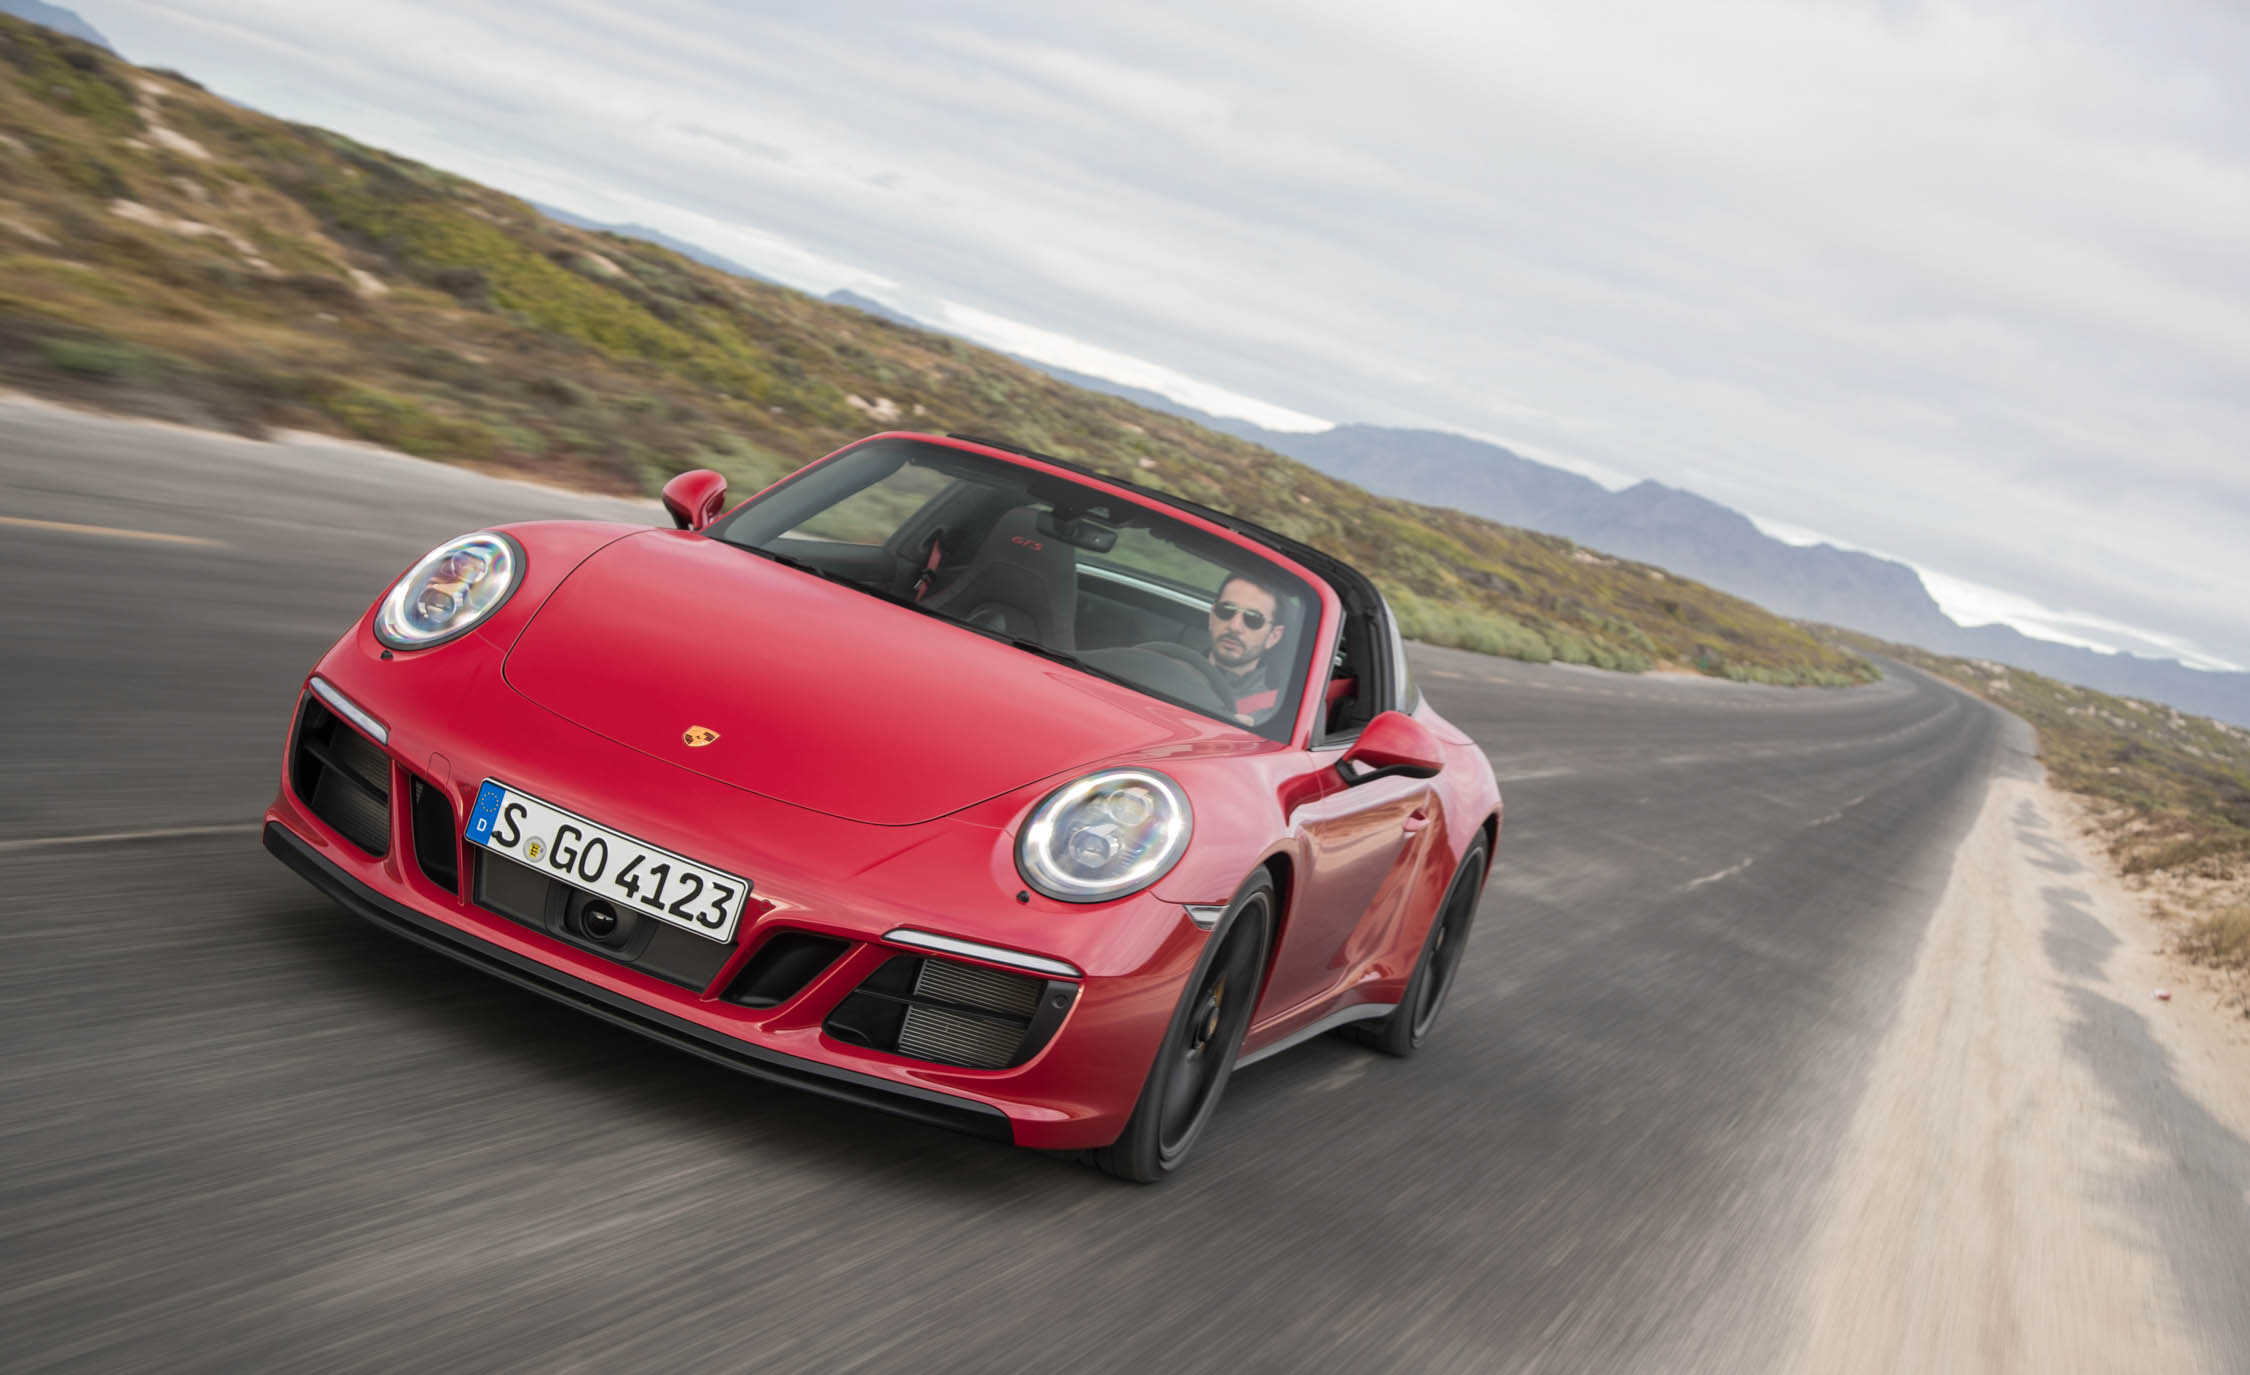 2017 Porsche 911 Targa 4 GTS Red Test Drive Front Corner (Photo 85 of 97)